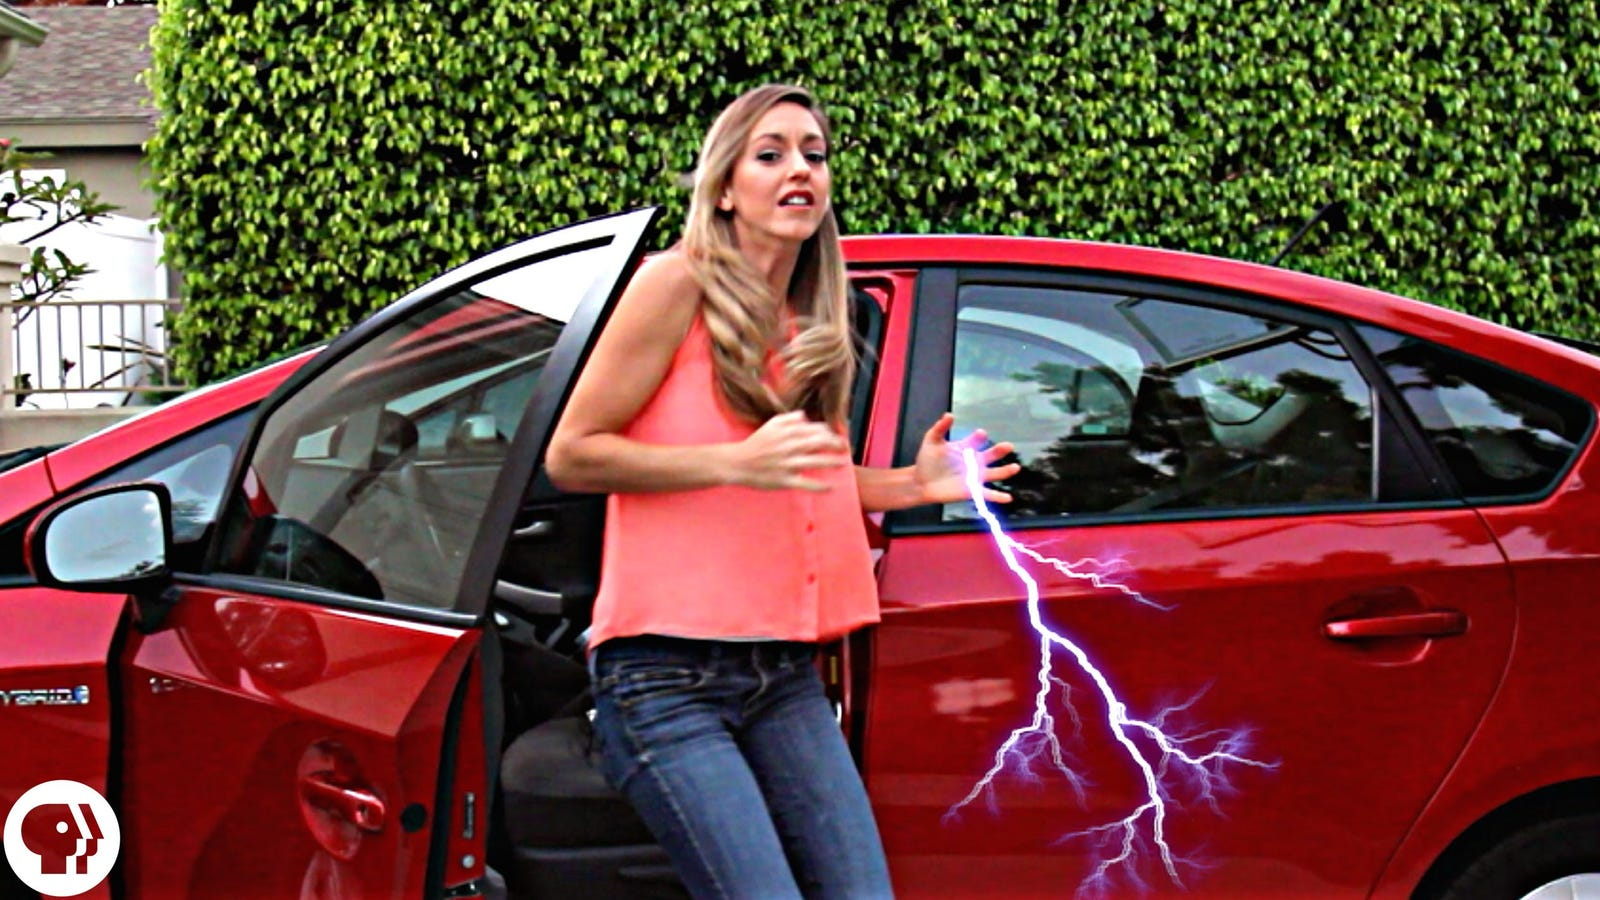 The Easiest Way To Avoid Static Shock When Exiting Your Car